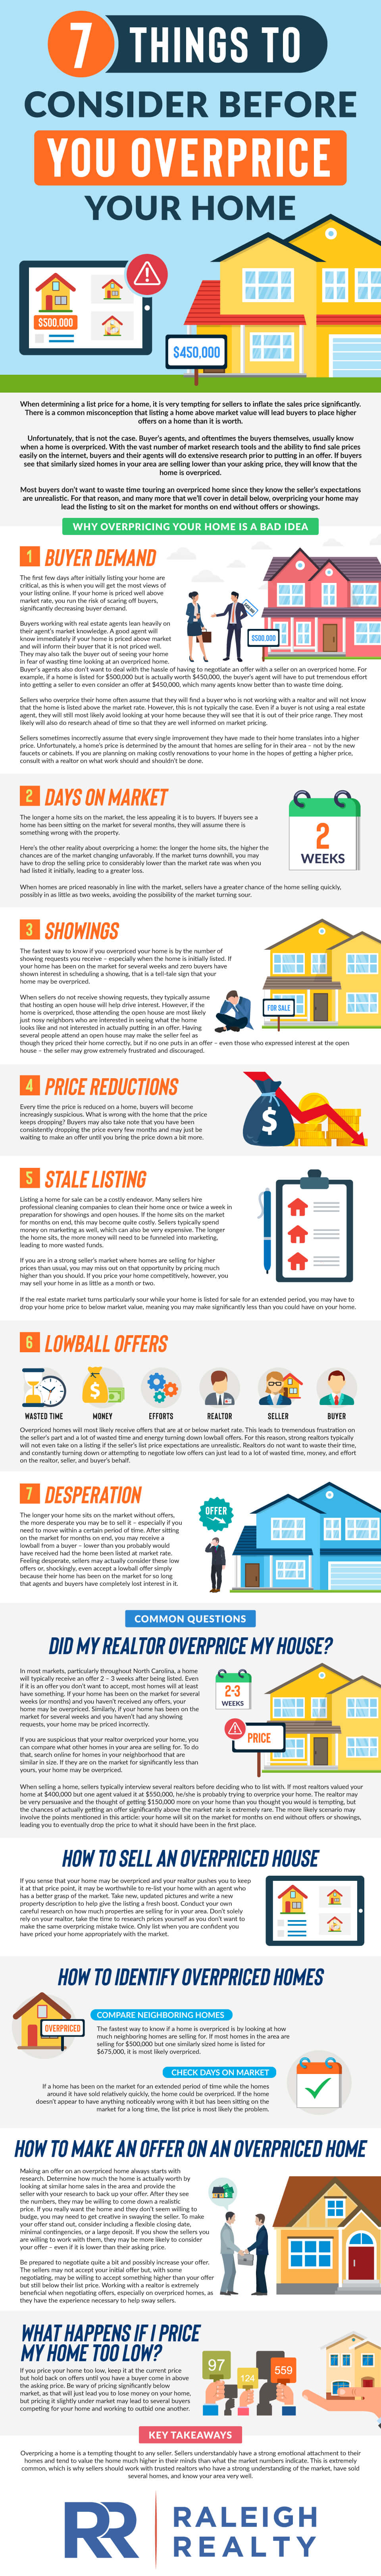 Why overpricing your home is a bad idea and 7 things to consider before you overprice a home!